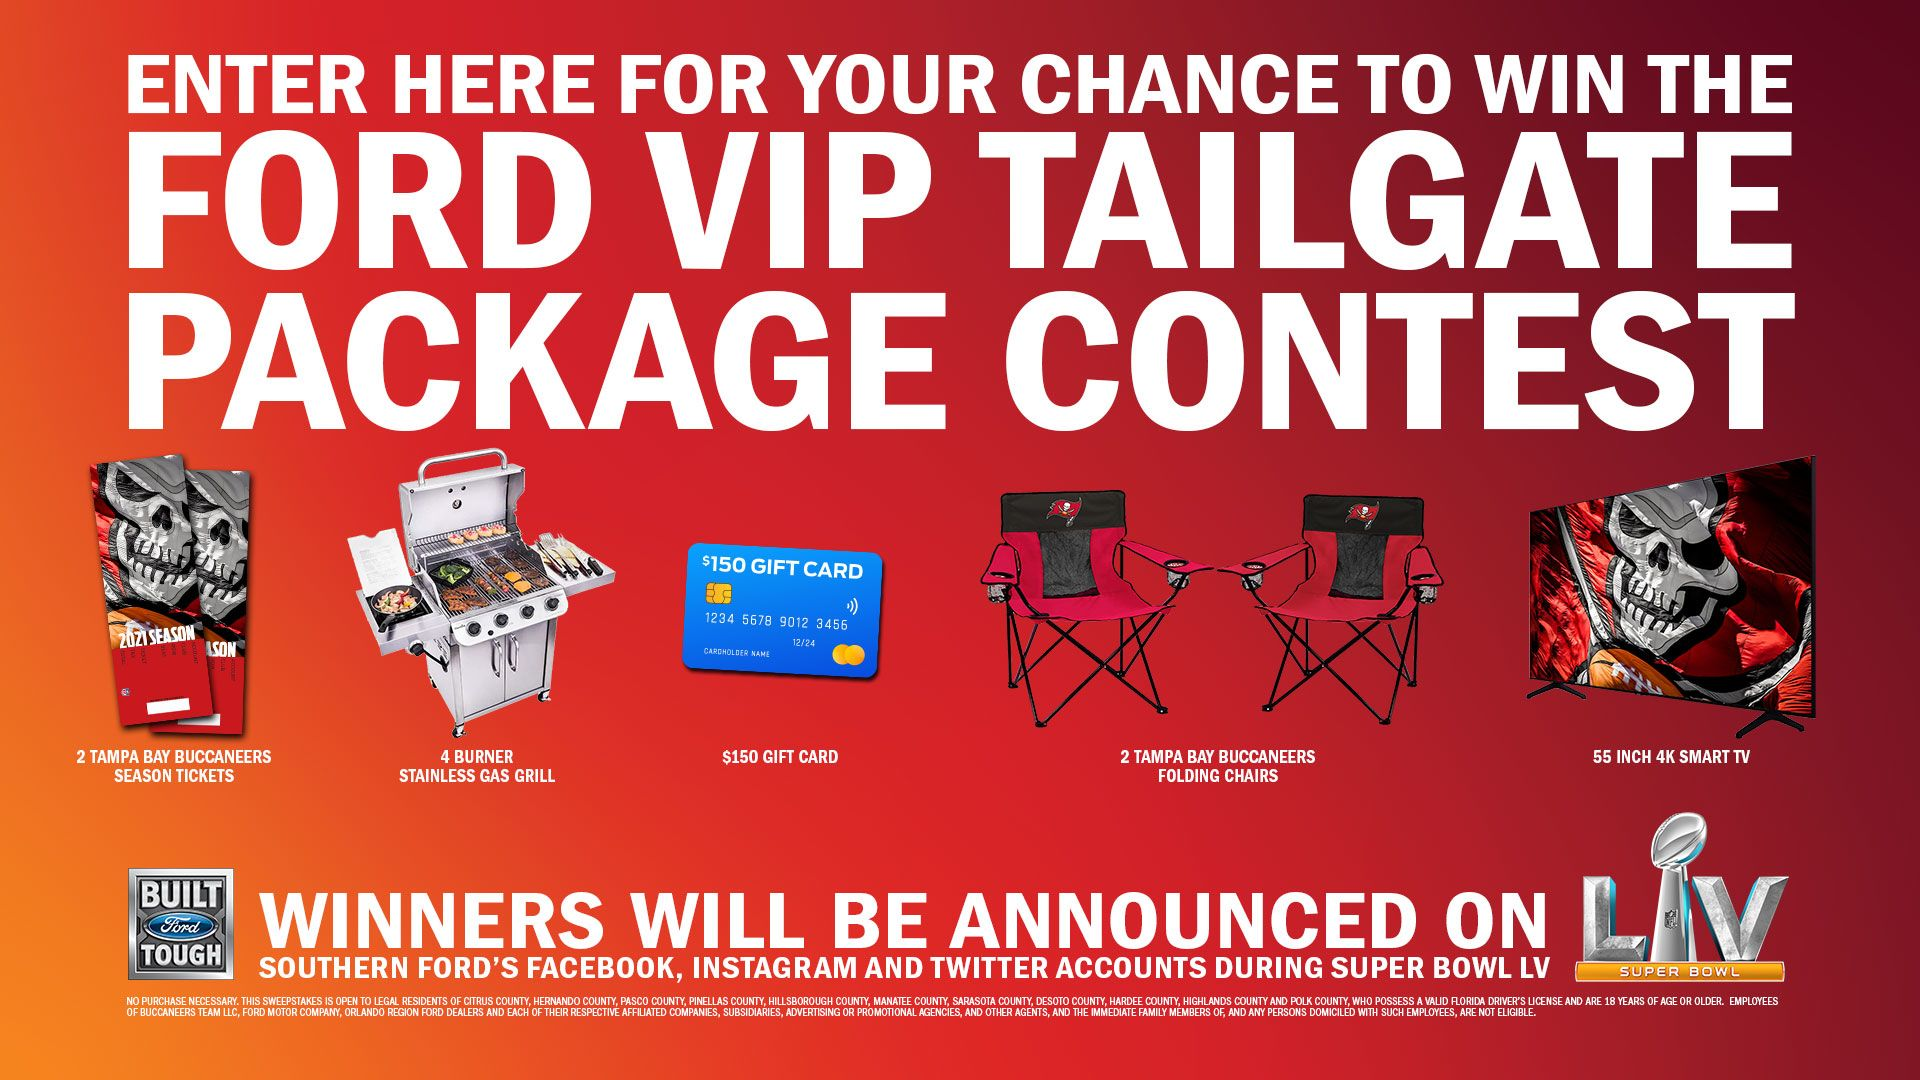 enter here for your chacnce to win the ford vip tailgate package contest. winners will be announced on southern ford's facebook, instagram and twitter accounts during the super bowl.